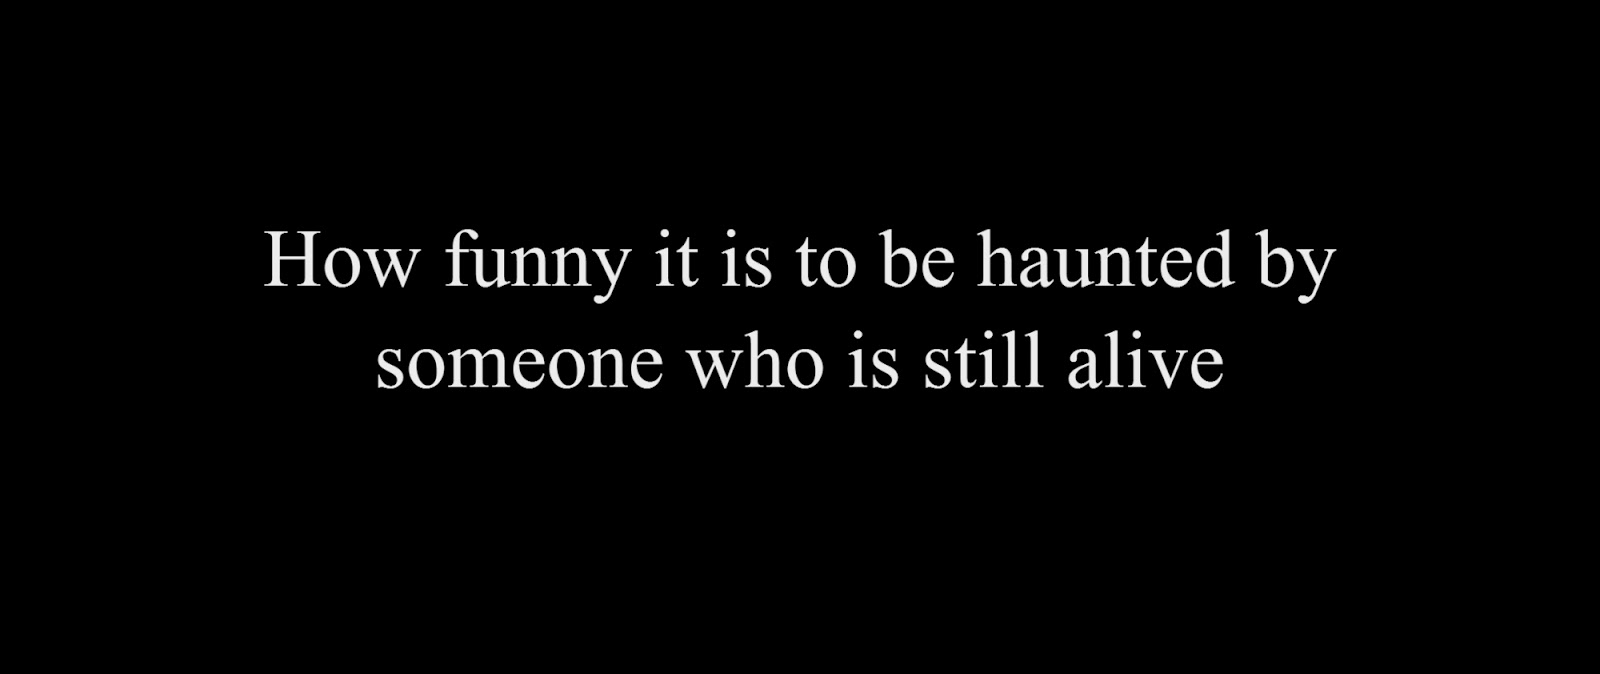 How funny it is to be haunted by someone who is still alive.